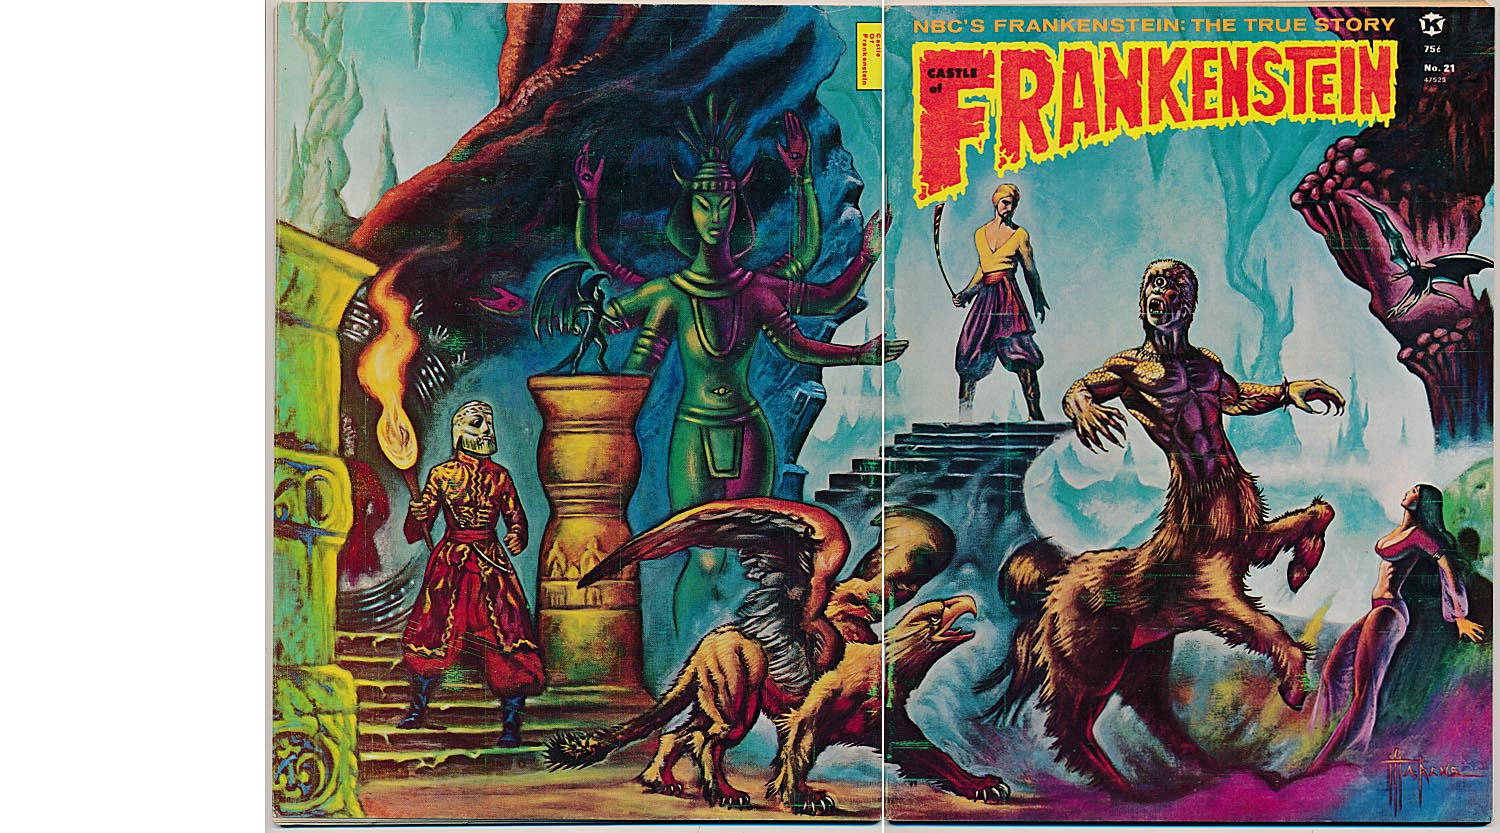 Castle Of Frankenstein 21 (Wraparound Cover) -VF